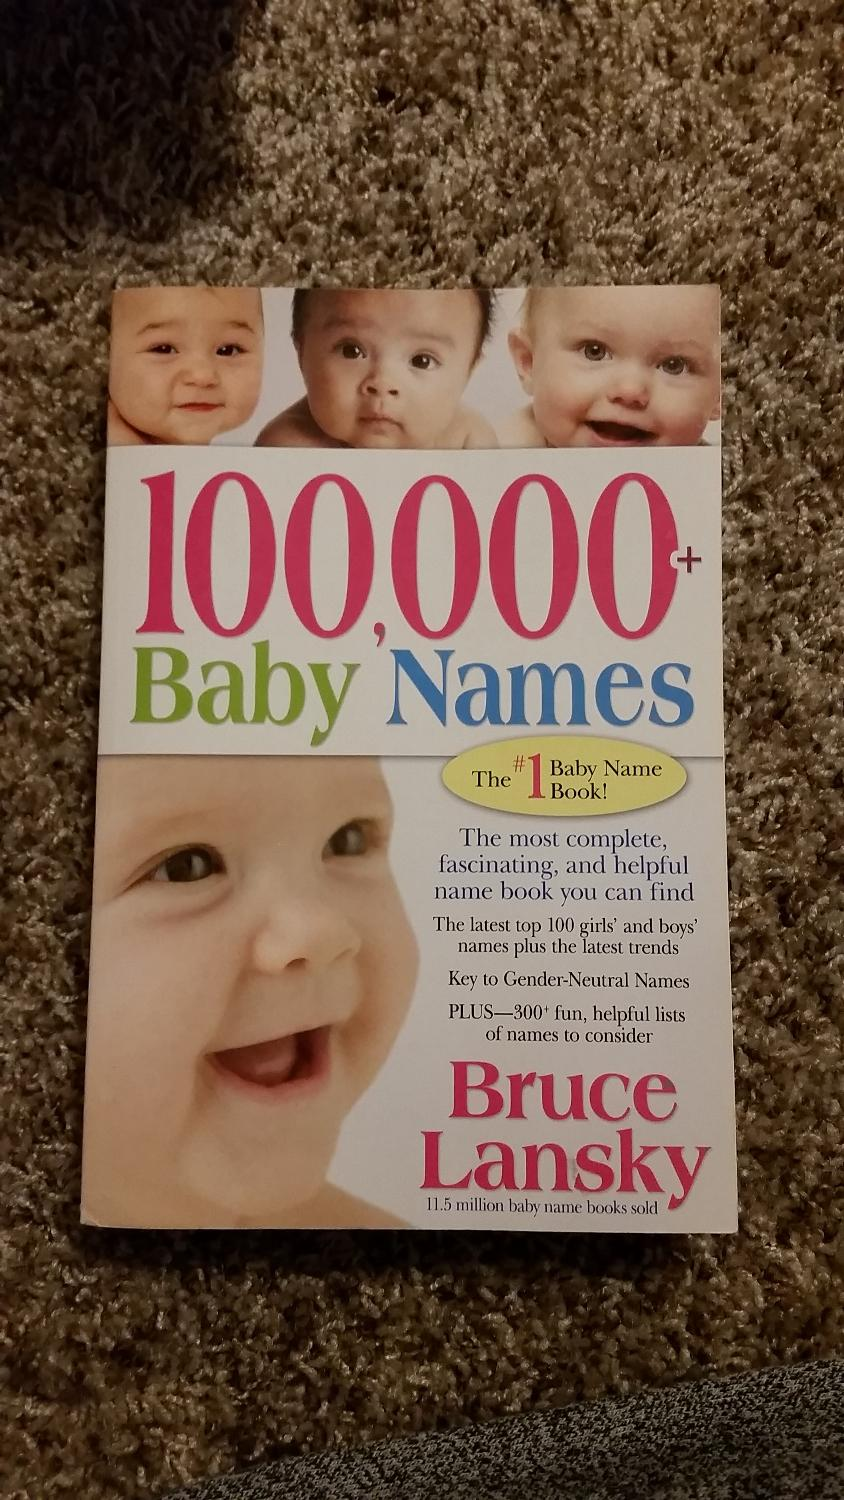 Best 100000+ Baby Names, The #1 Baby Name Book! By Bruce Lansky for sale in  Hamilton, Ontario for 2018